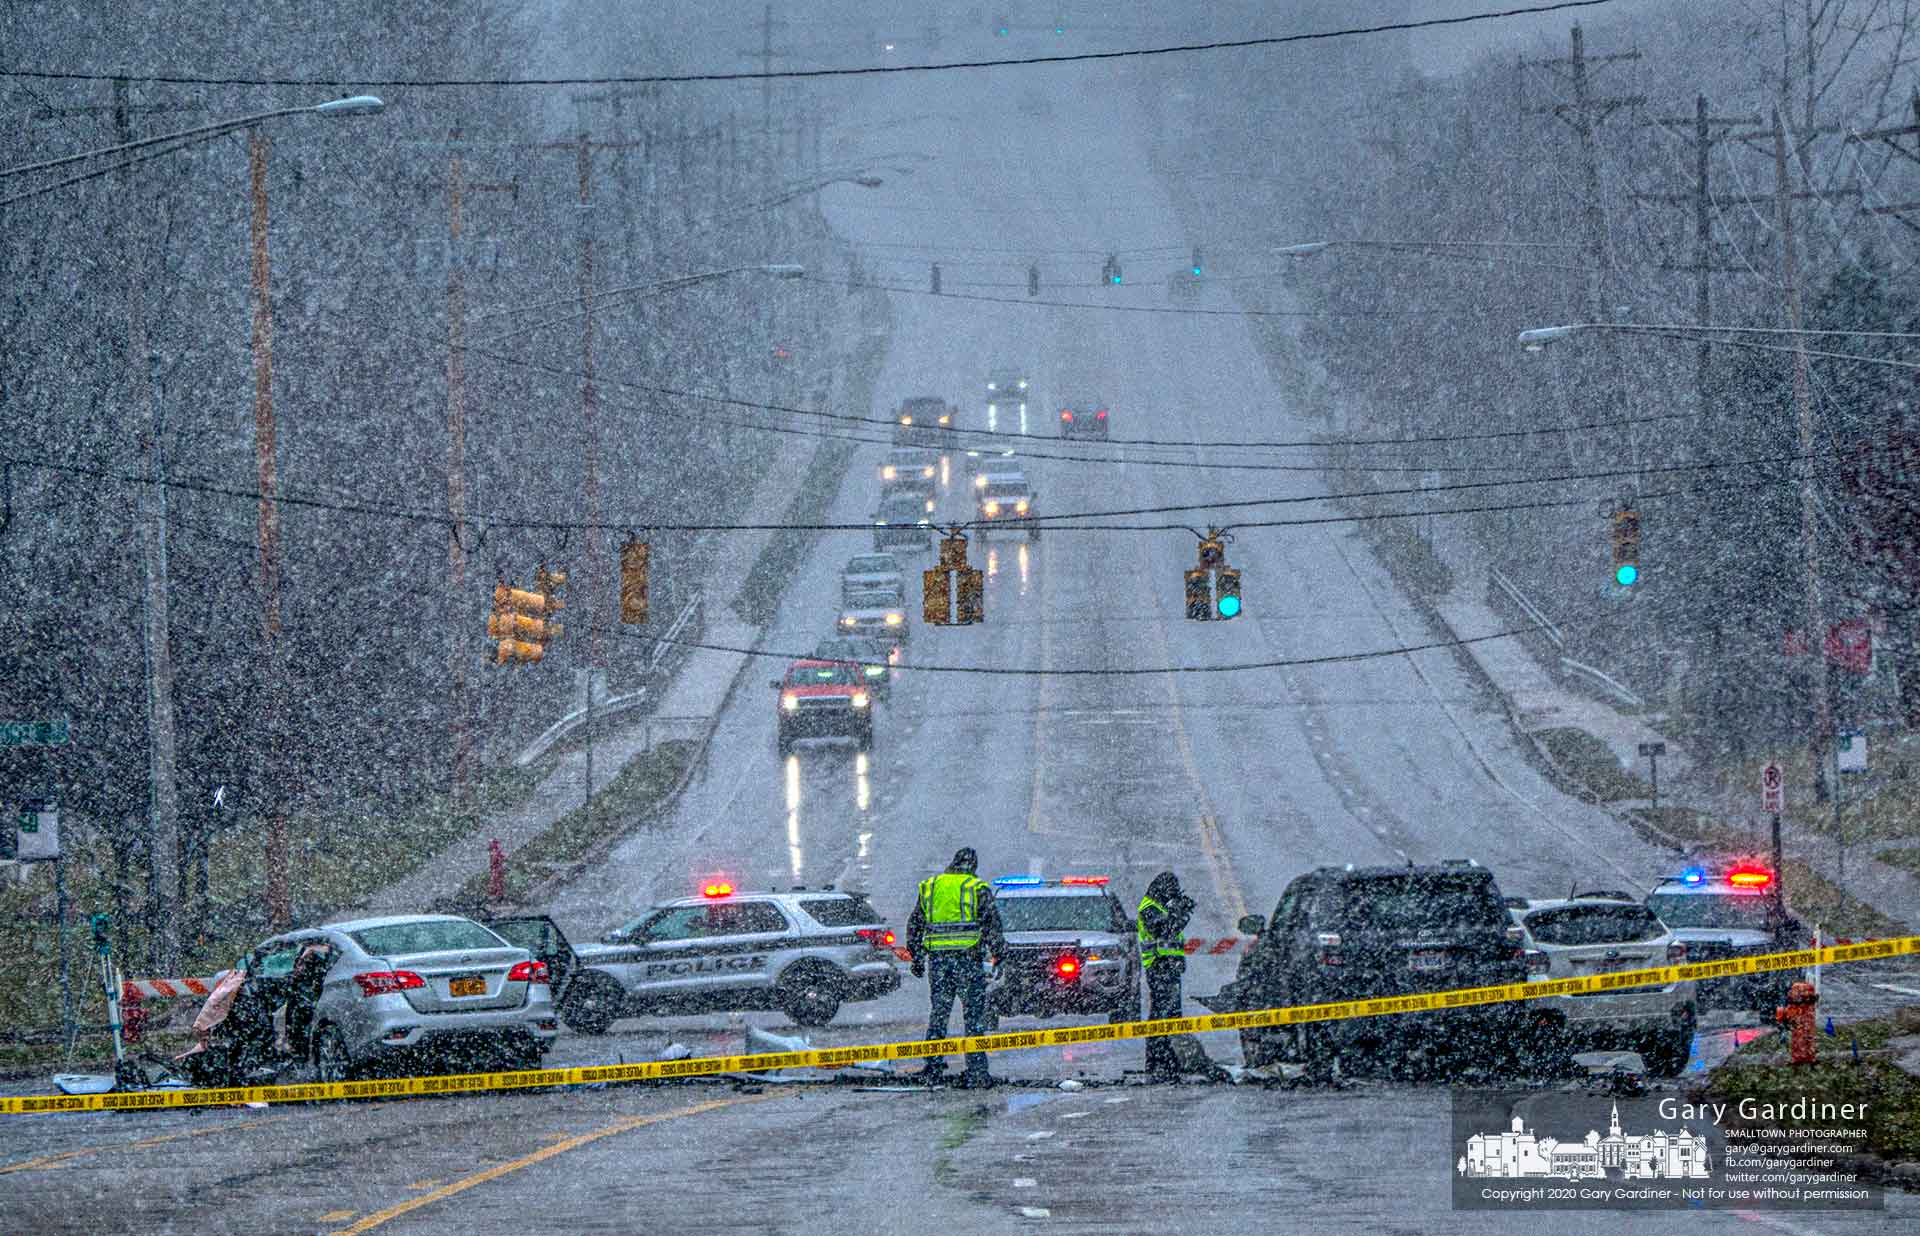 Westerville police officers investigate a three-car crash that closed Schrock Road Saturday morning for several hours and sent two people to the hospital. My Final Photo for March 14, 2020.